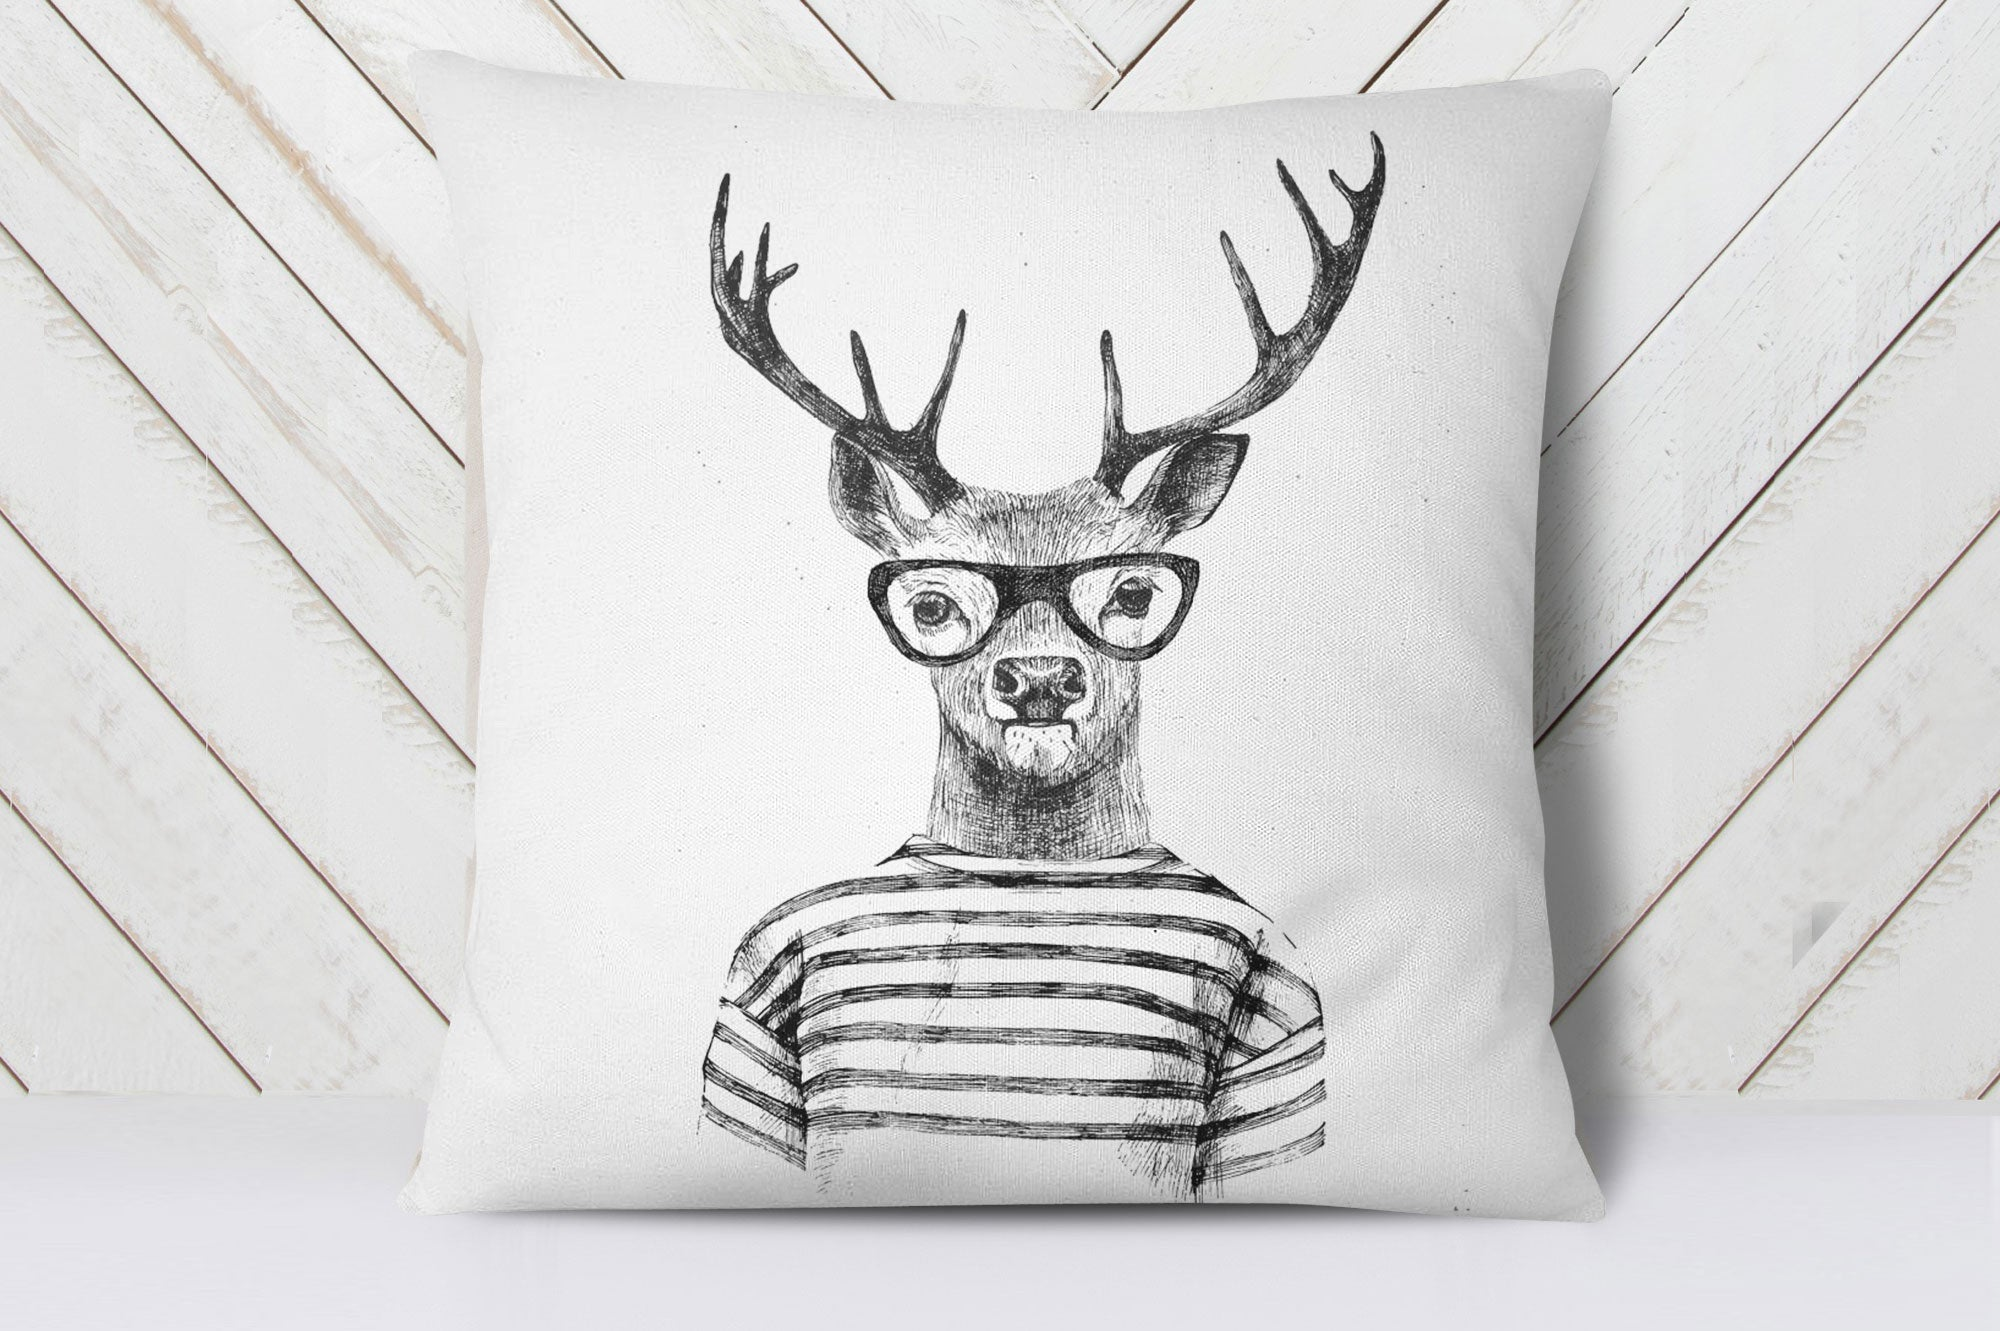 Hipster Deer Cushion Cover